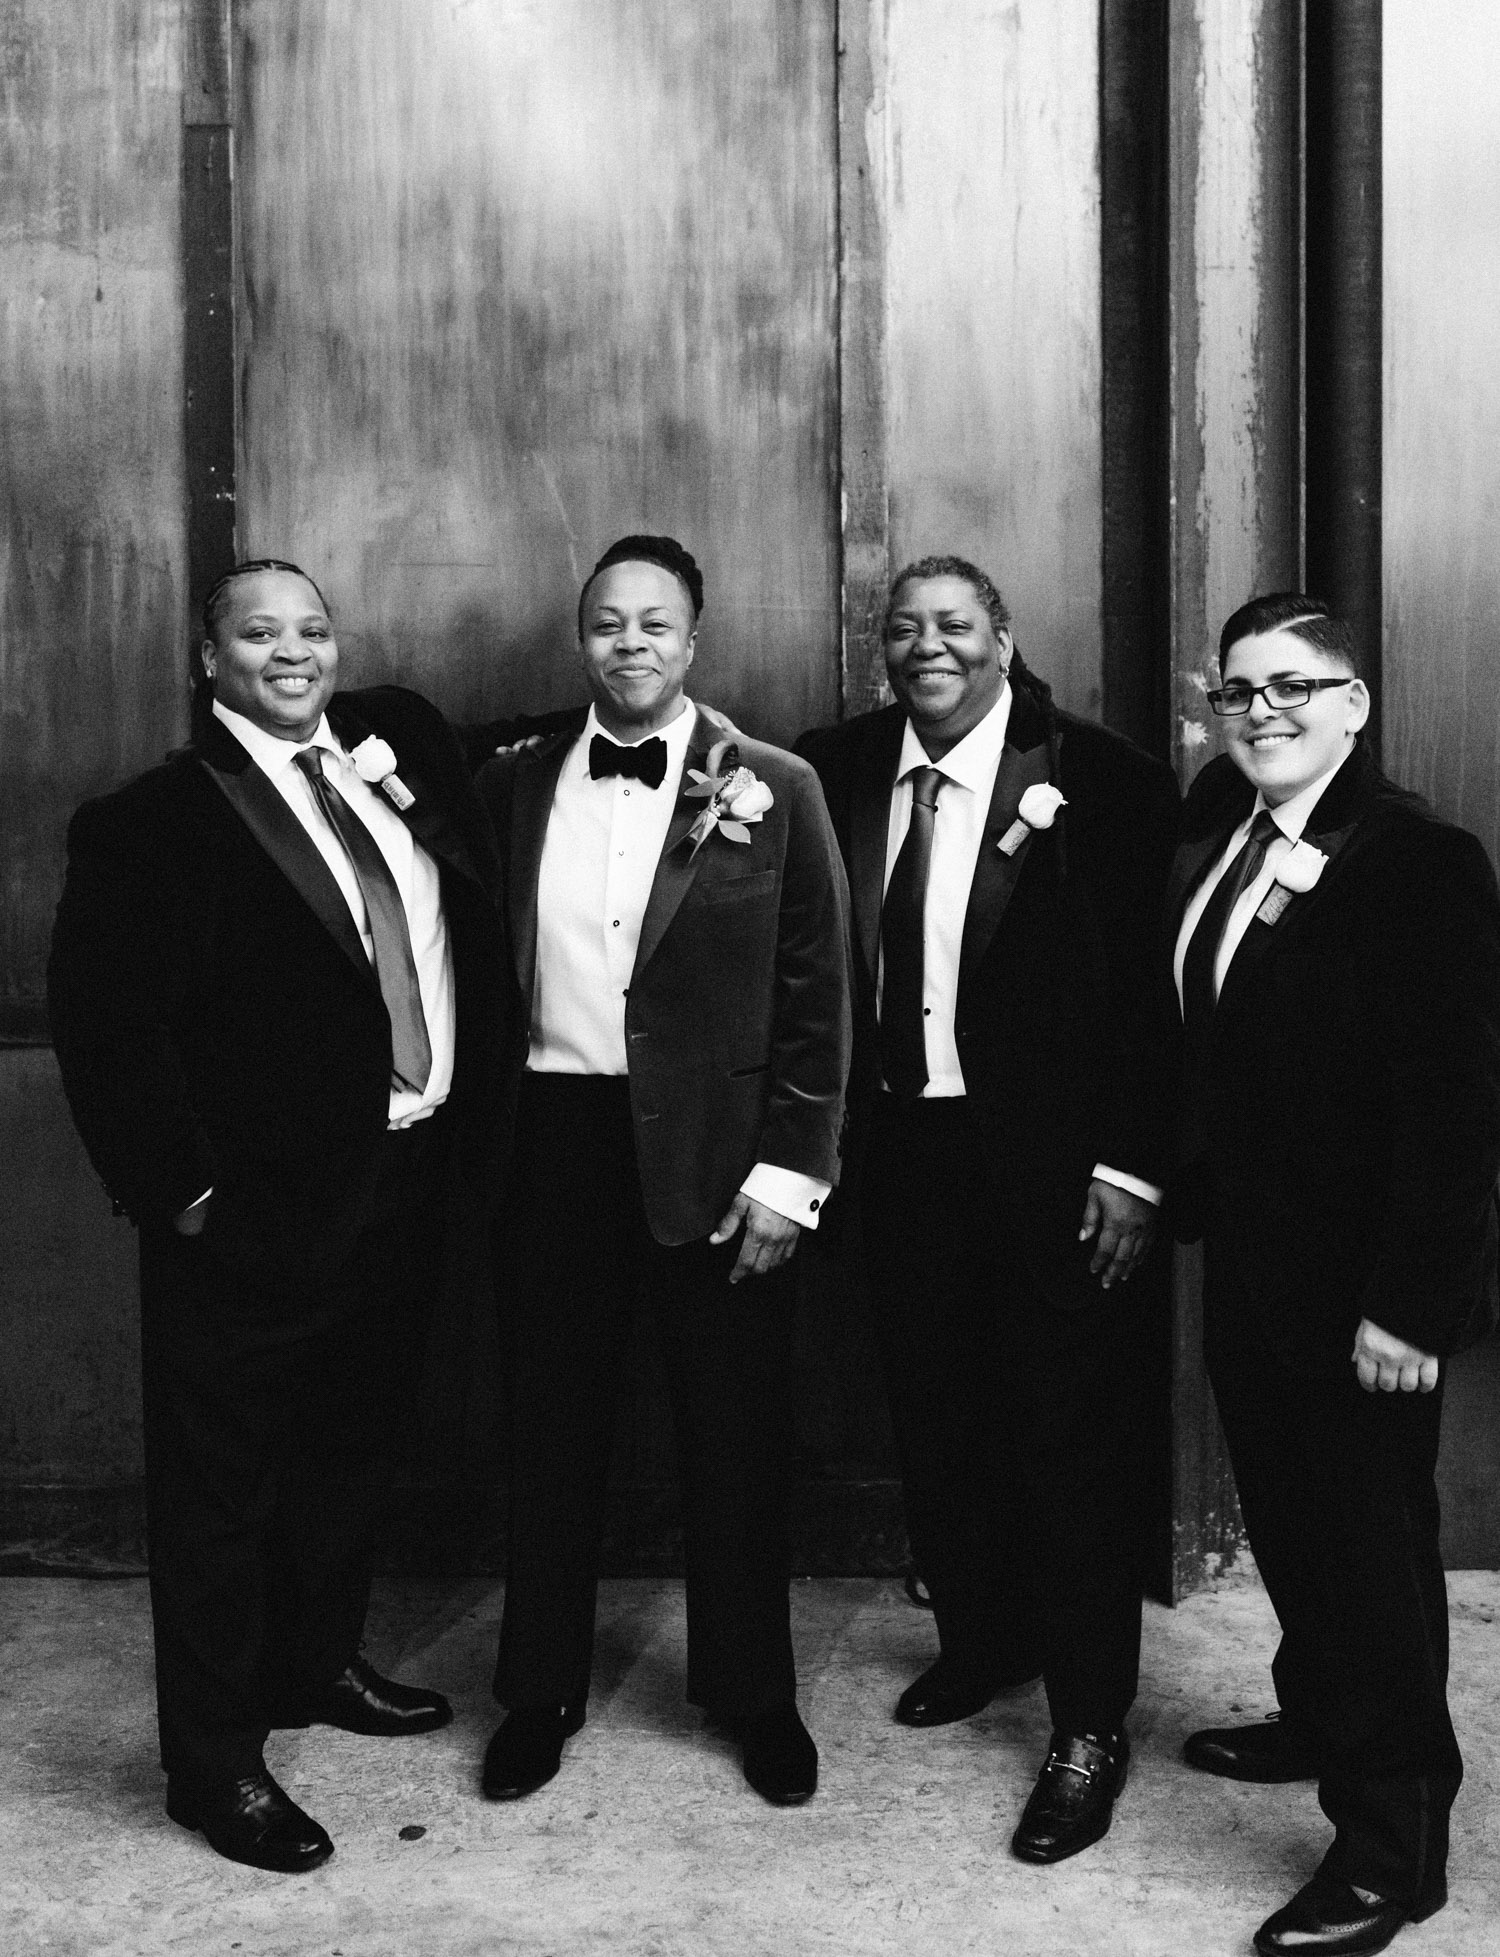 A wedding party poses together during a black same sex wedding at Brooklyn Winery in New York City